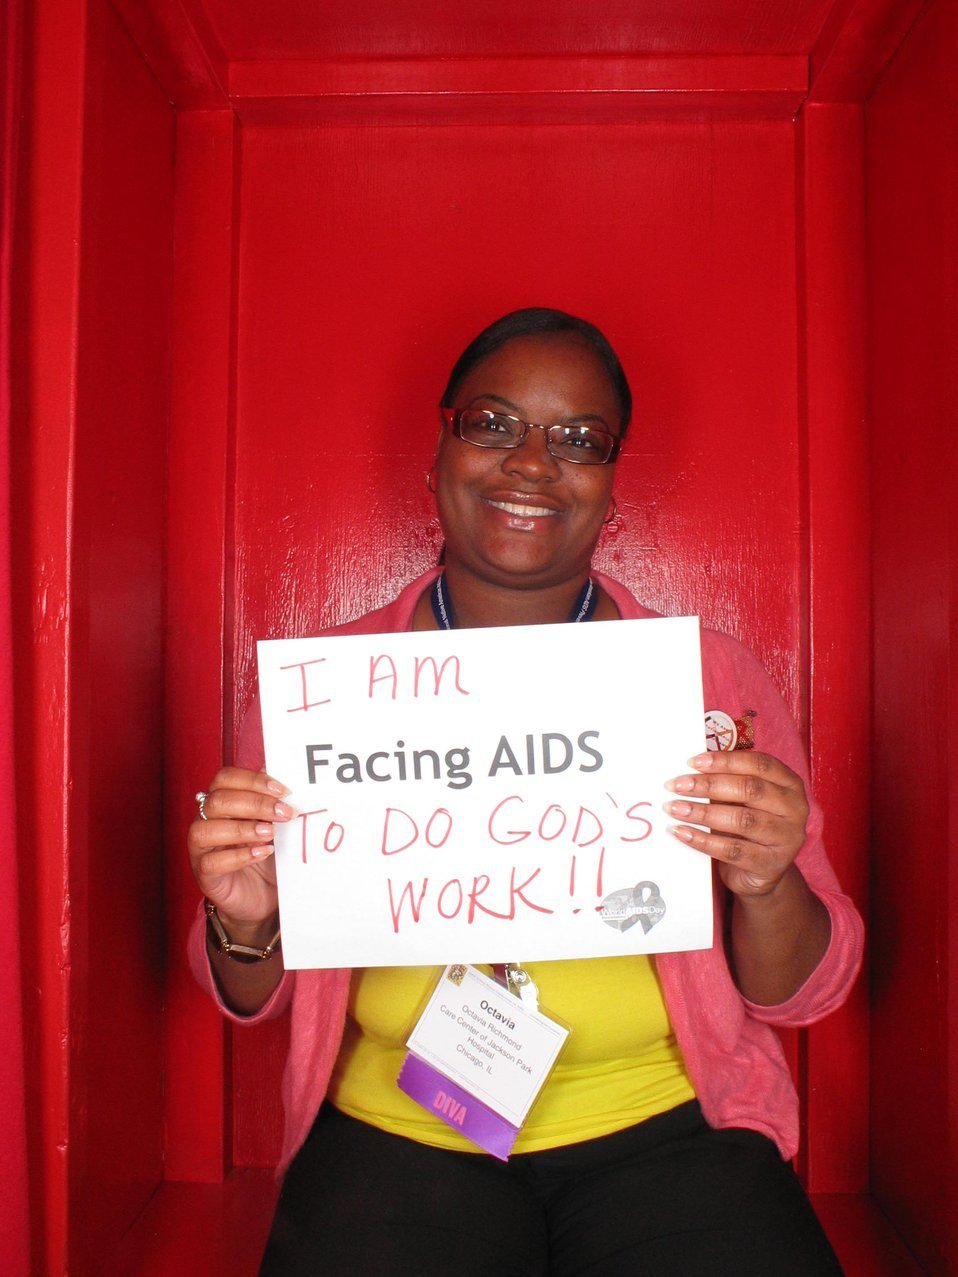 I am Facing AIDS to do God's work!!